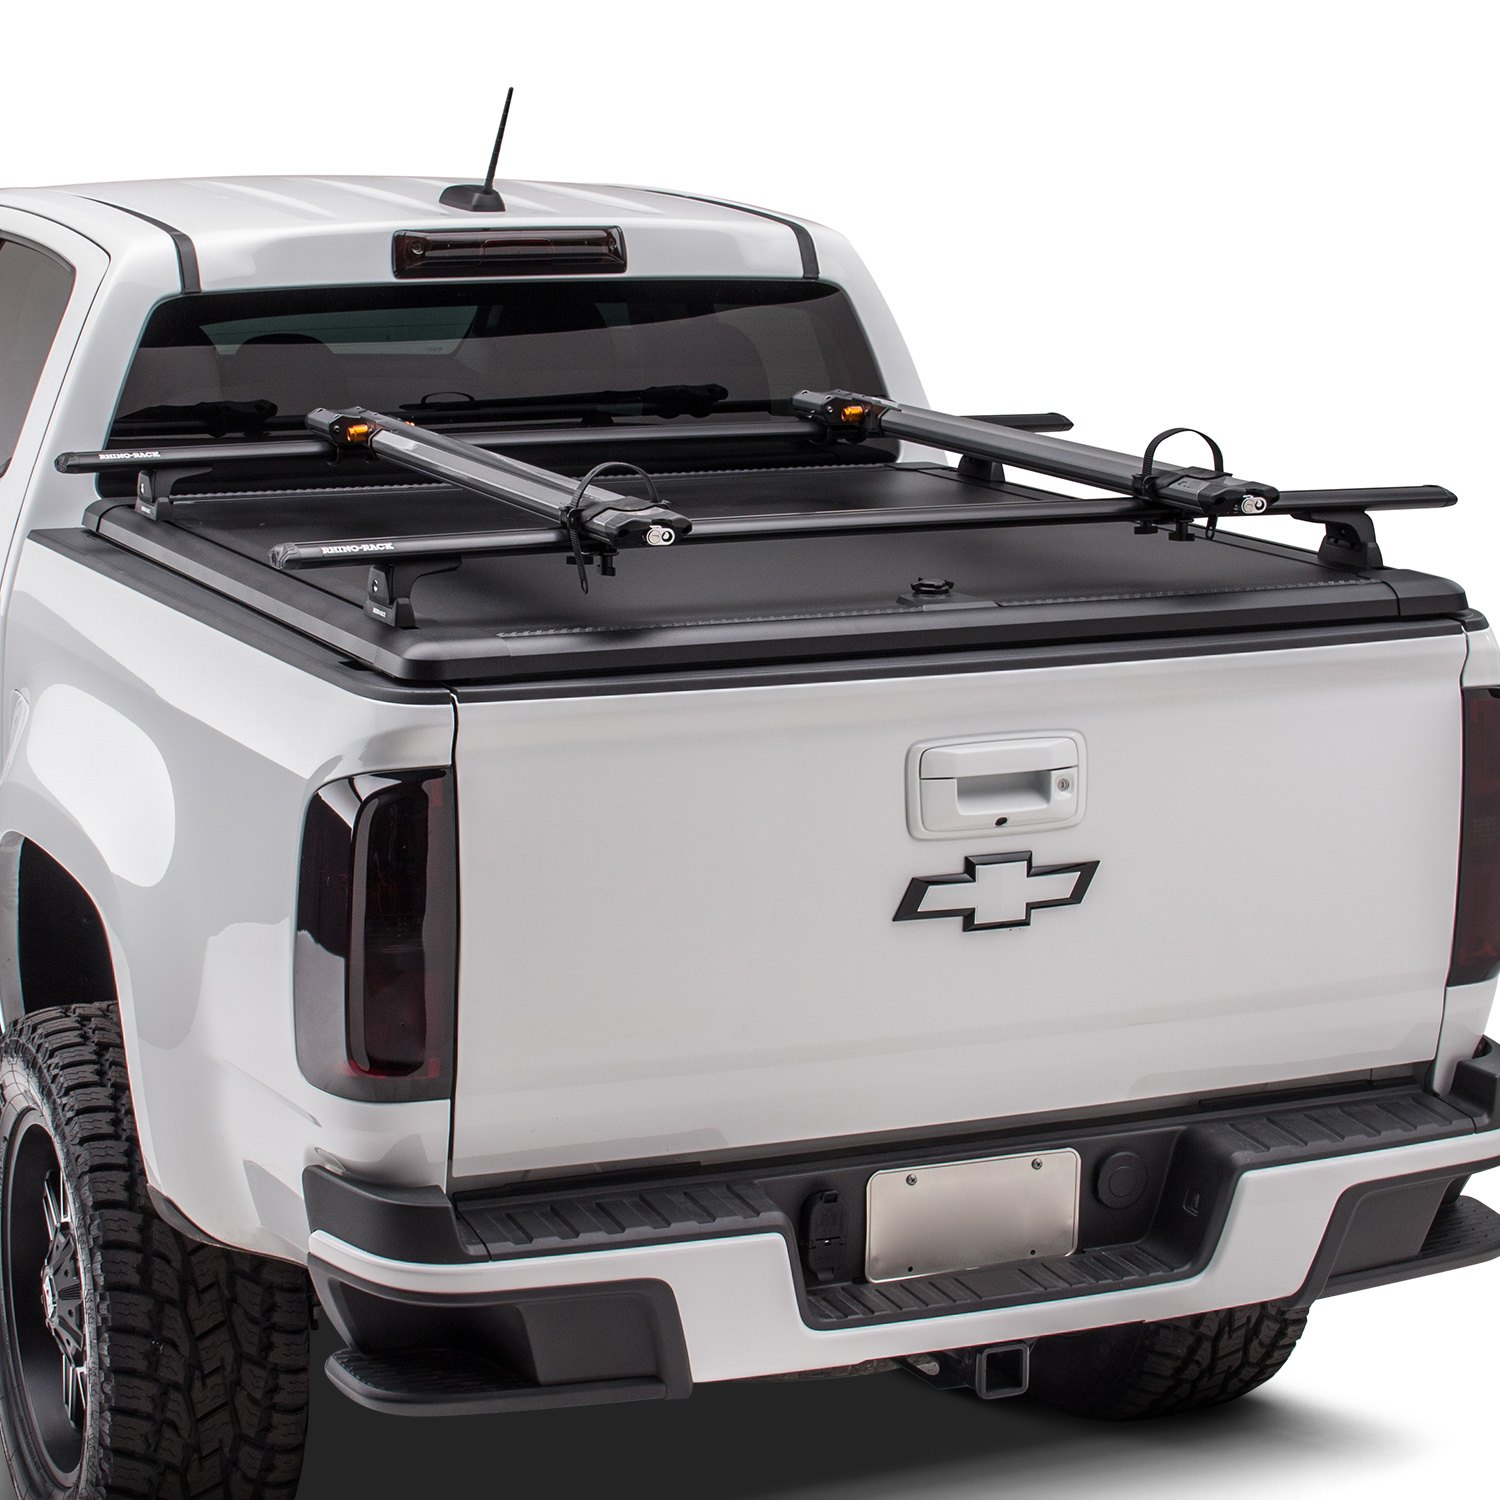 2015 Chevy Colorado Truck Bed Accessories Bed Rails